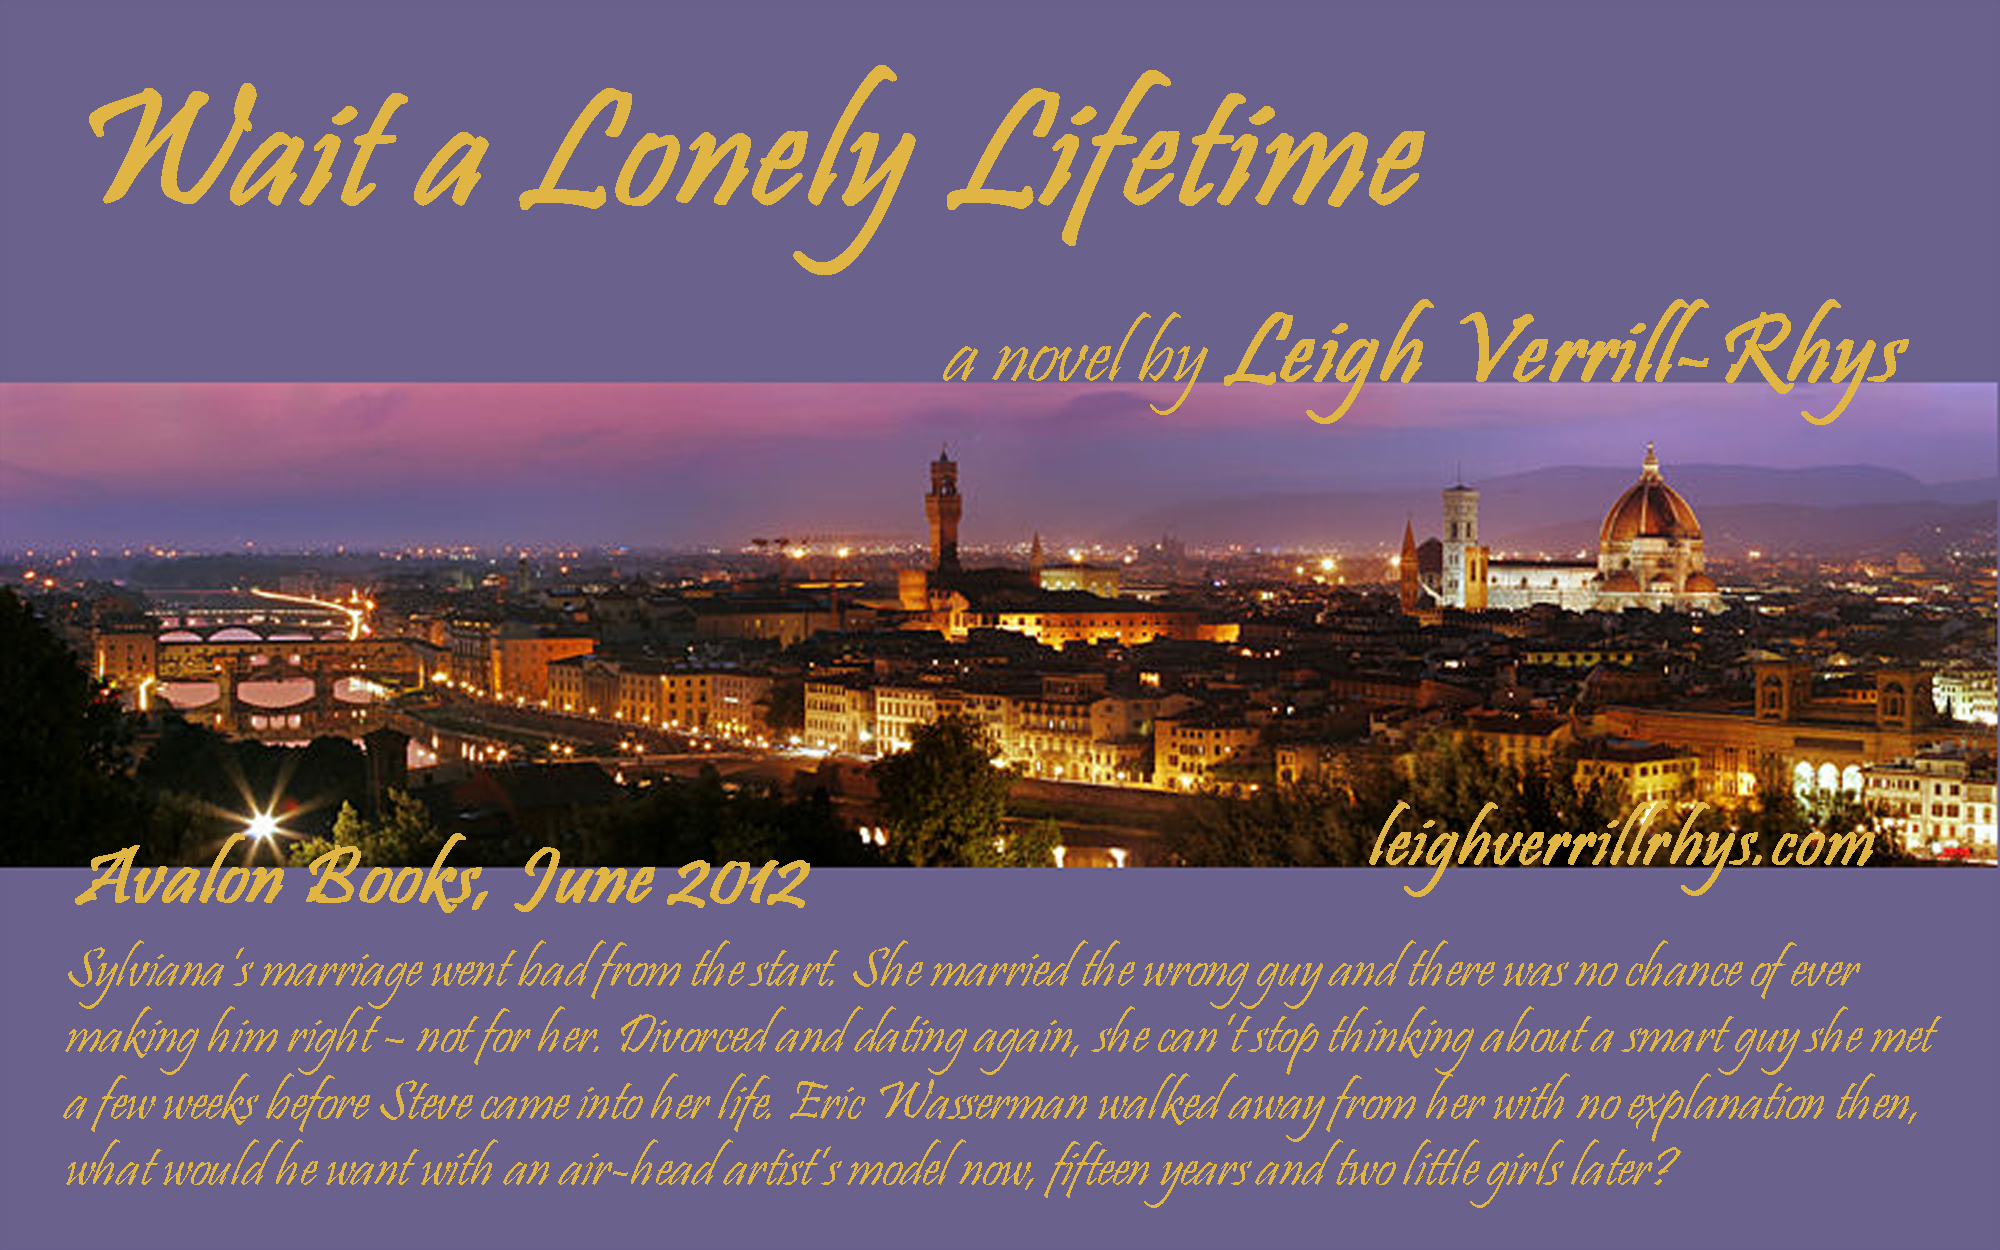 Promotional Material for Wait a Lonely Lifetime